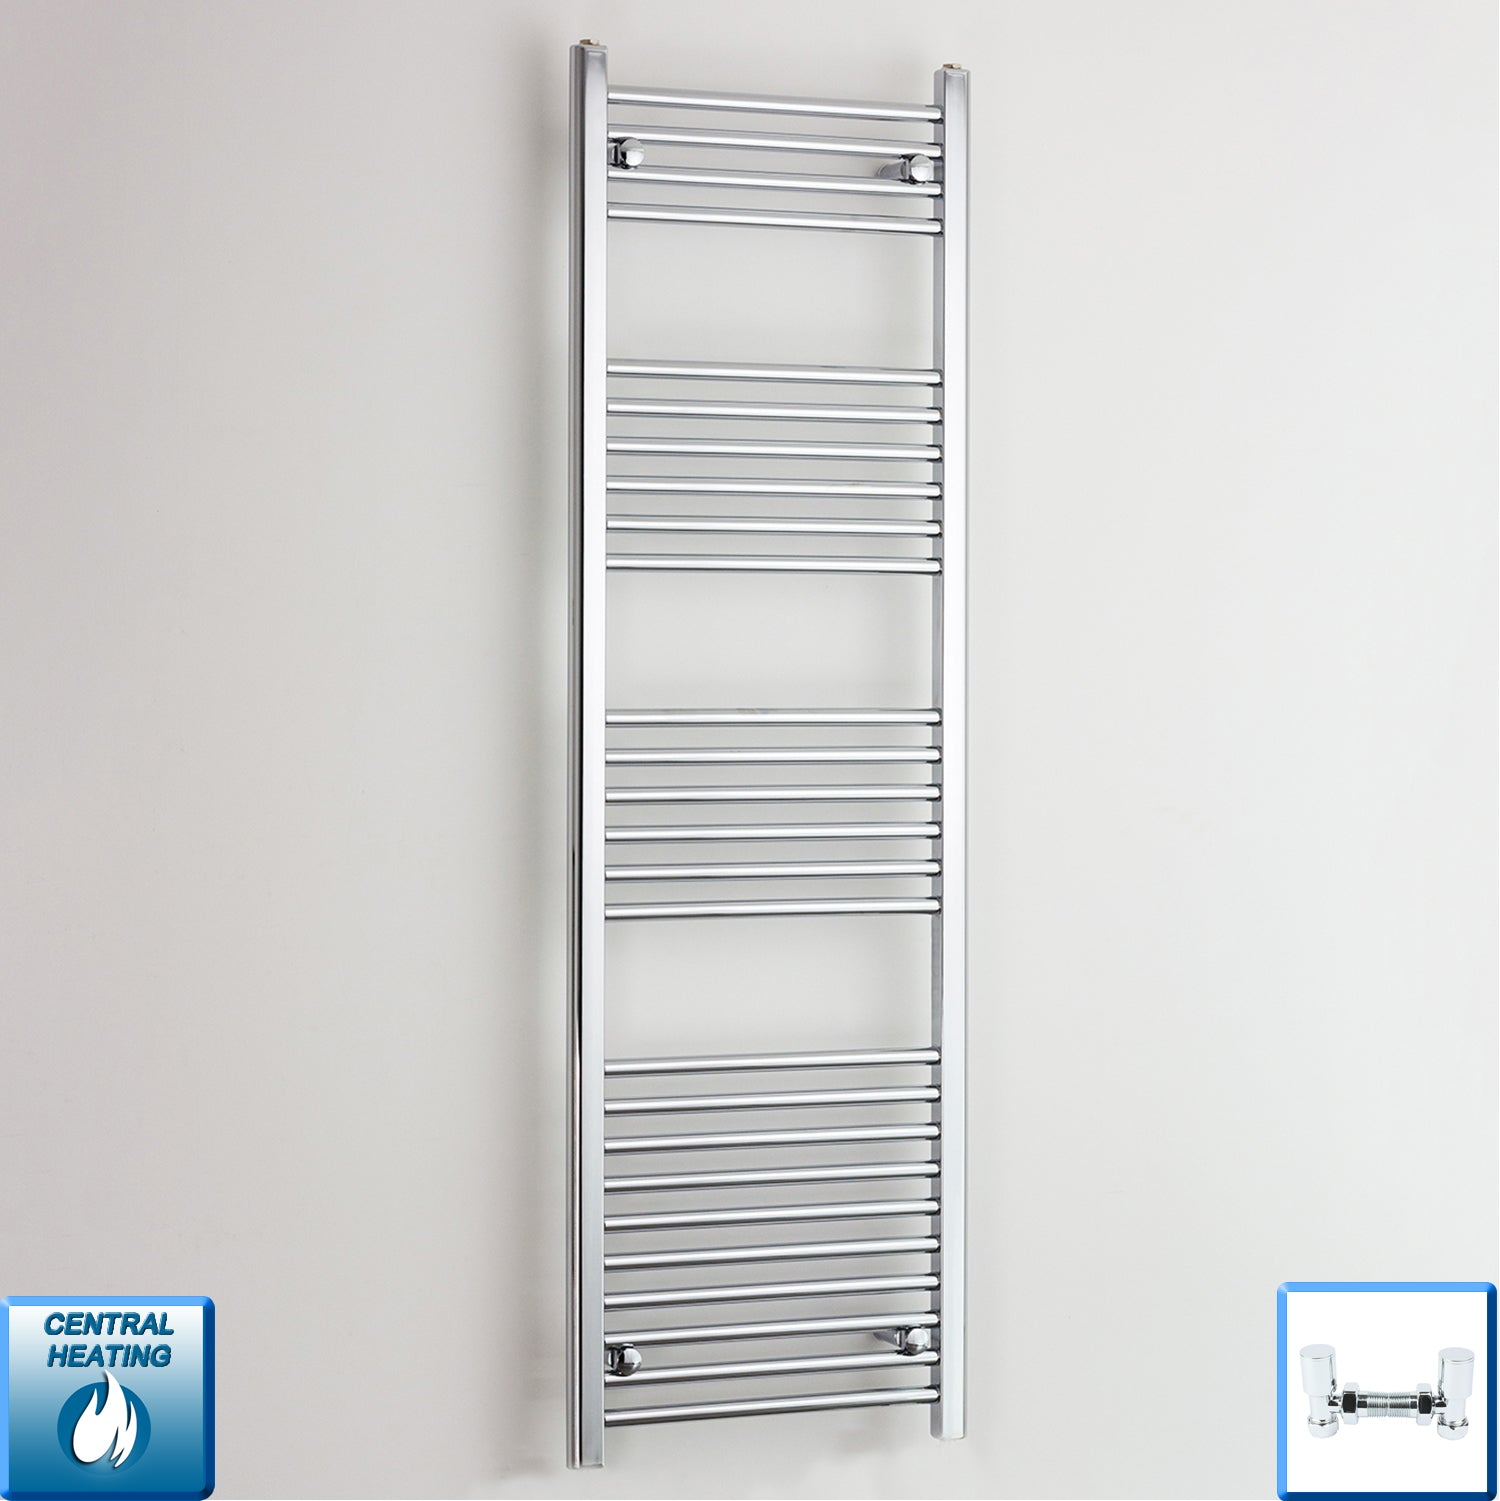 600mm Wide 1600mm High Chrome Towel Rail Radiator With Angled Valve